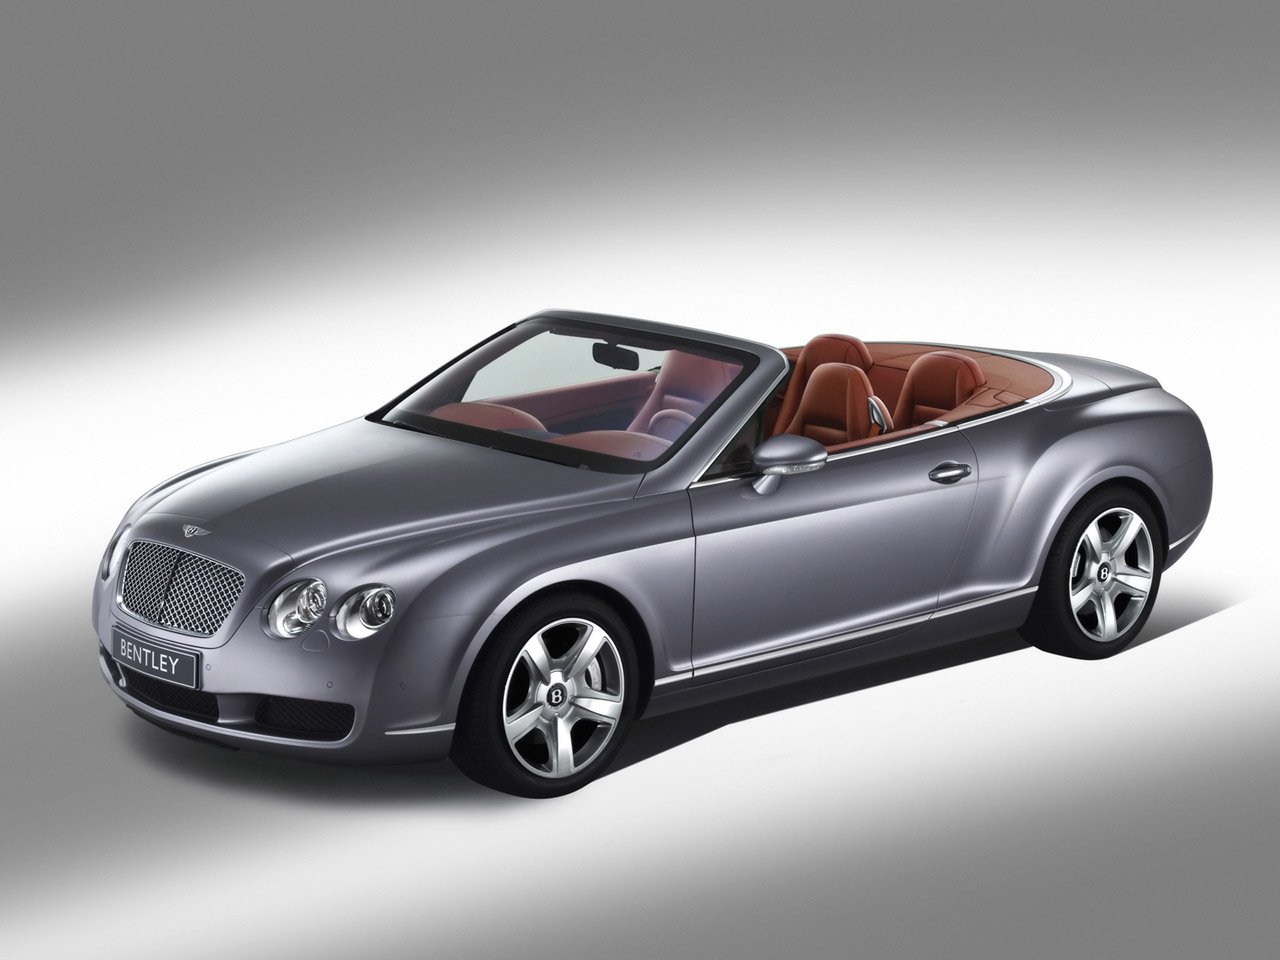 Bentley-Cars-hd-super-wallpaper-wp424040-1